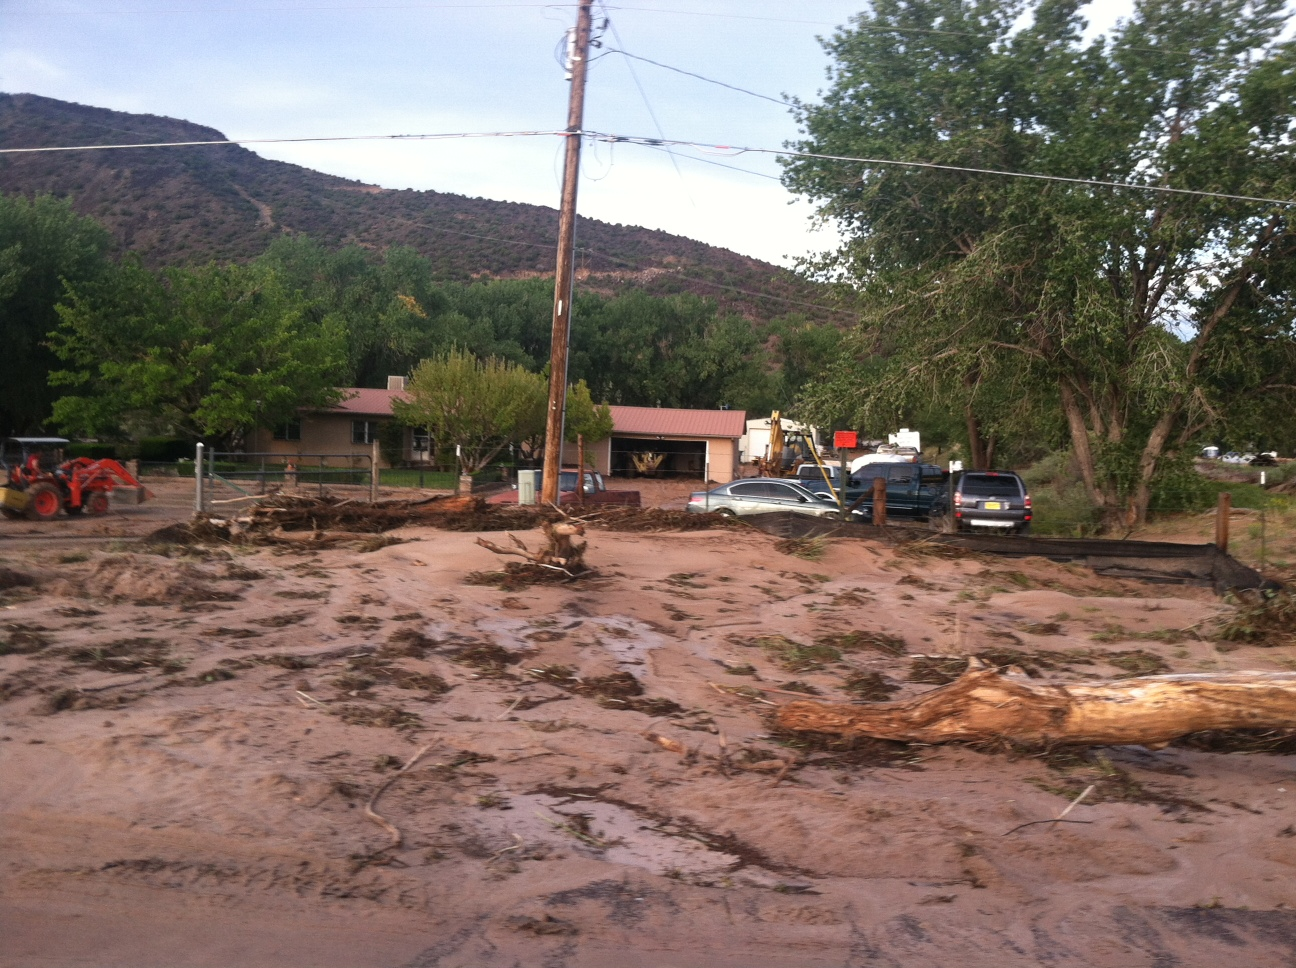 Mud and debris were carried close to homes near Medanales when the Rio Chama flooded on September 18, 2013.